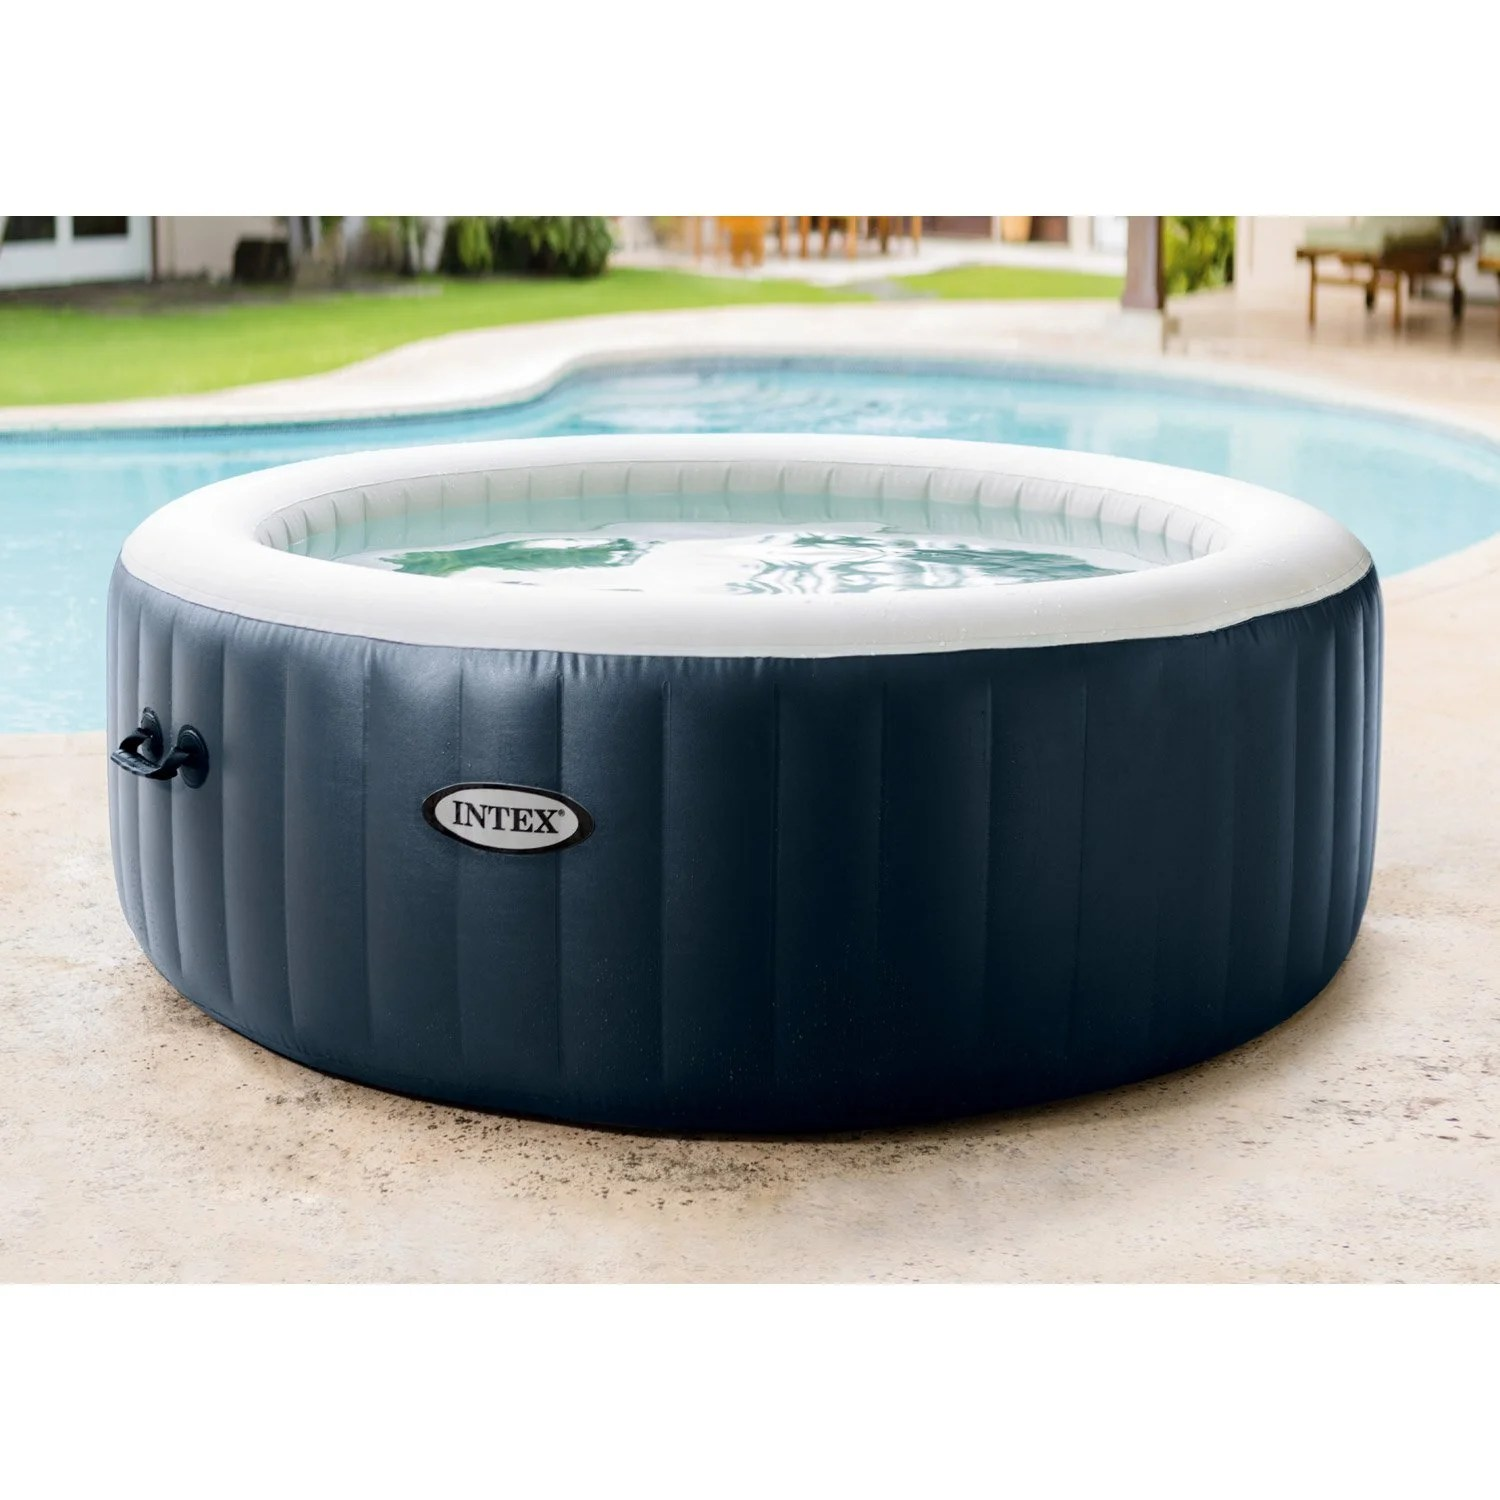 Spa Exterieur 6 Places Spa Gonflable Intex Purespa Bulles Blue Navy Rond 6